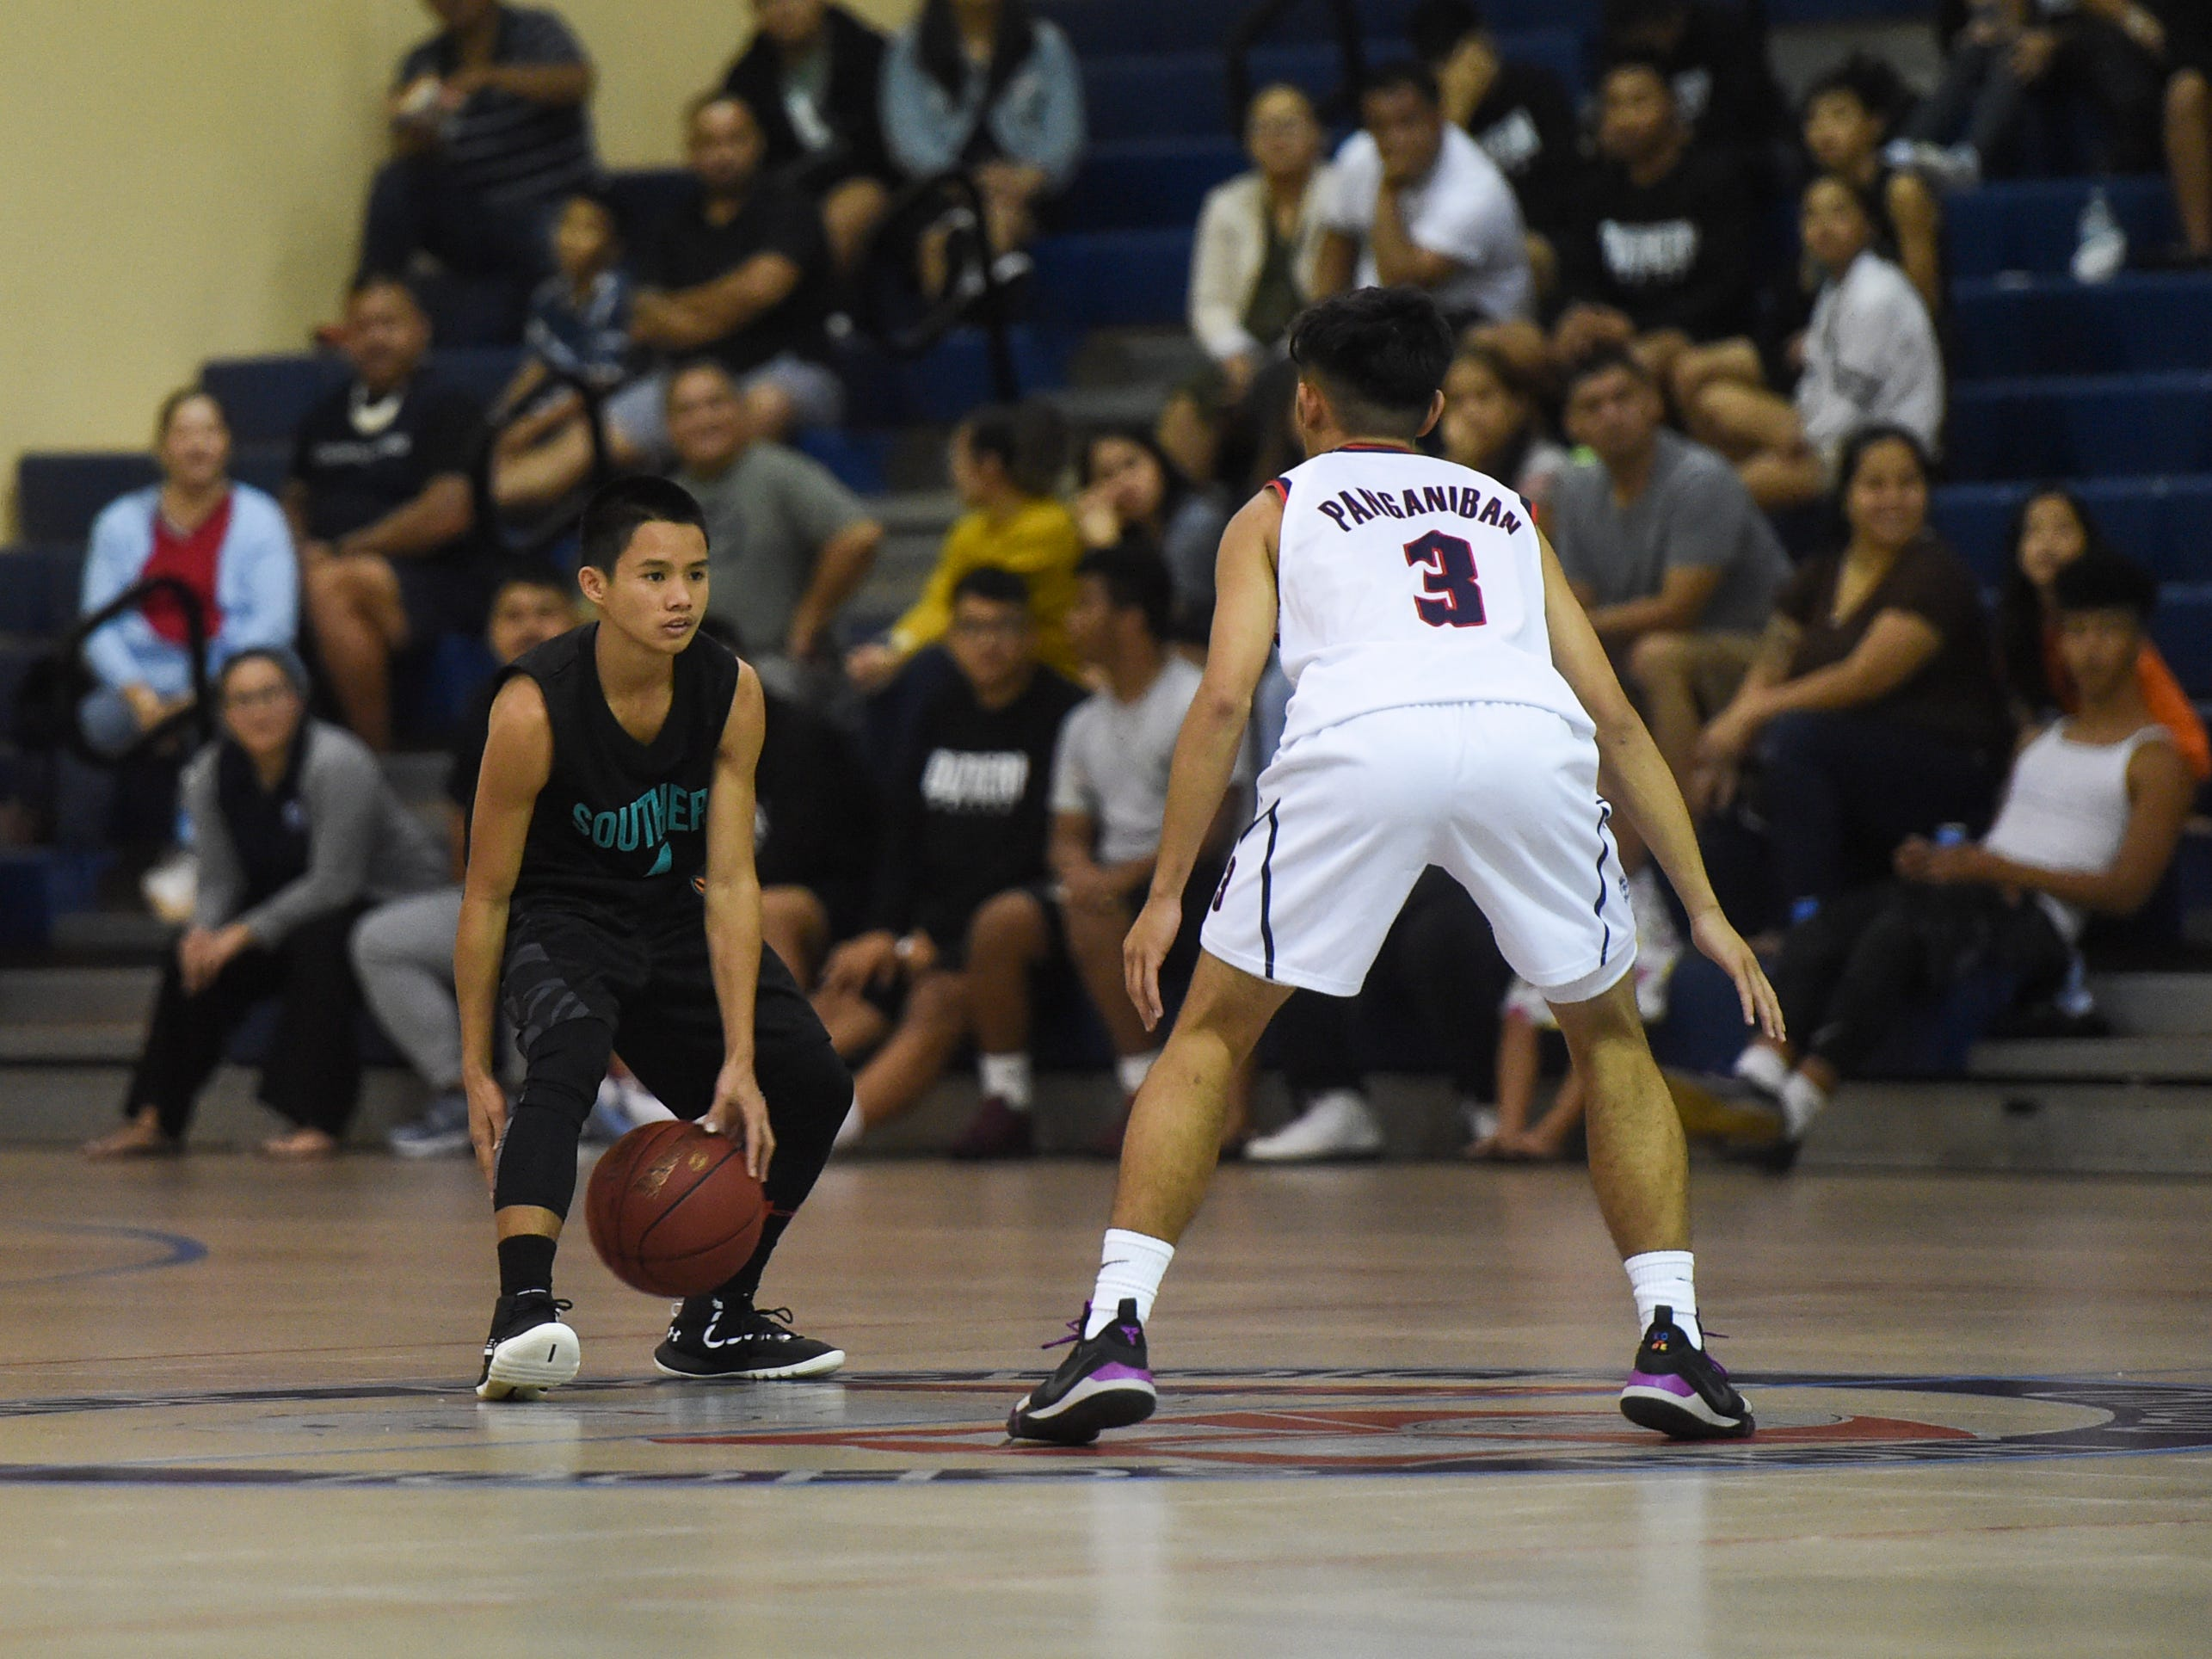 The Okkodo Bulldogs dominated the Southern High Dolphins 81-47 in their IIAAG Boys' Basketball game at their home gym, Feb. 8, 2019.